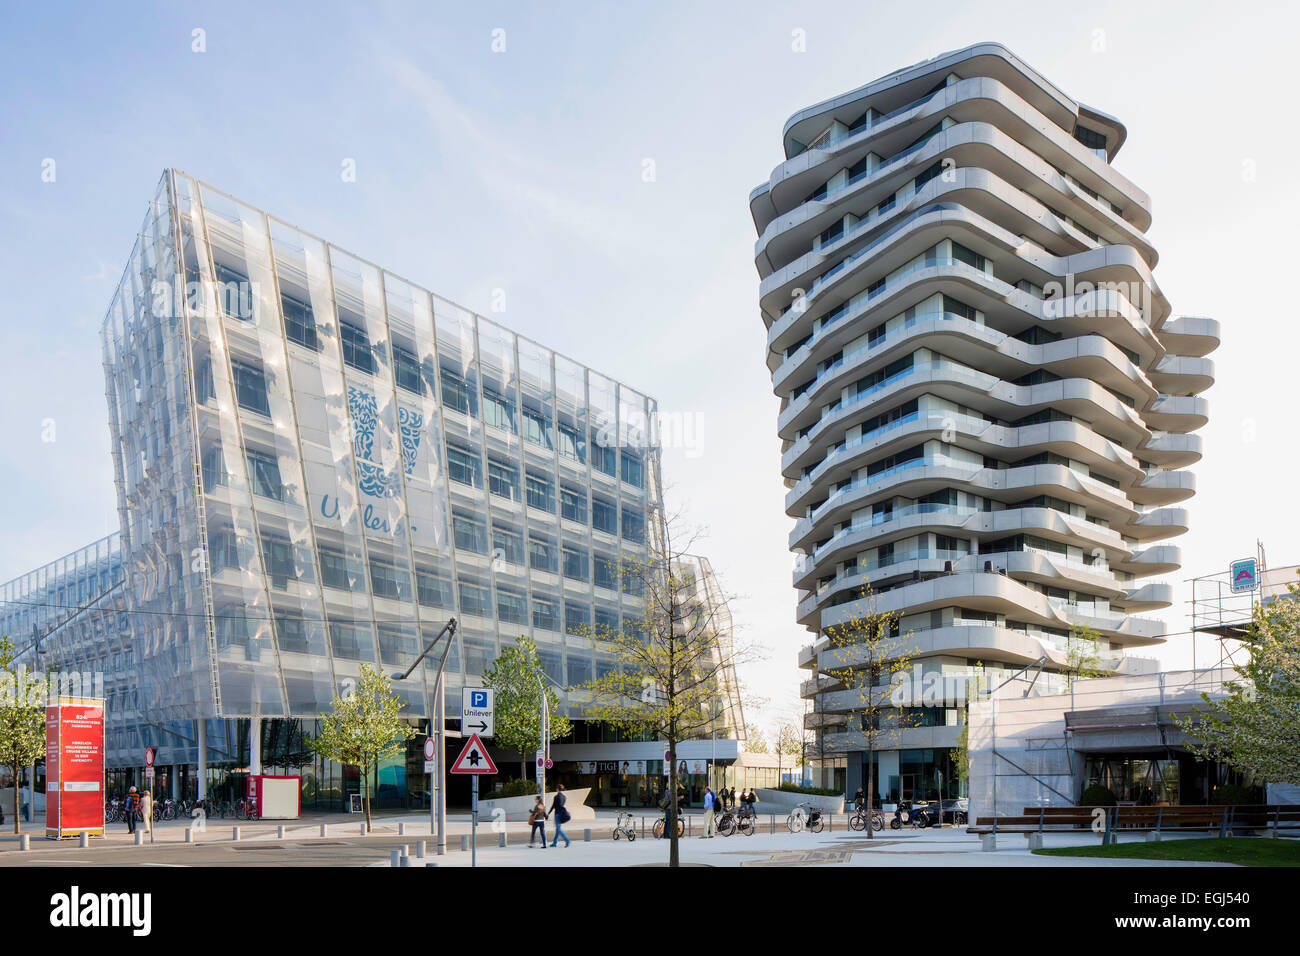 unilever haus office building and residential marco polo tower stock photo royalty free image. Black Bedroom Furniture Sets. Home Design Ideas